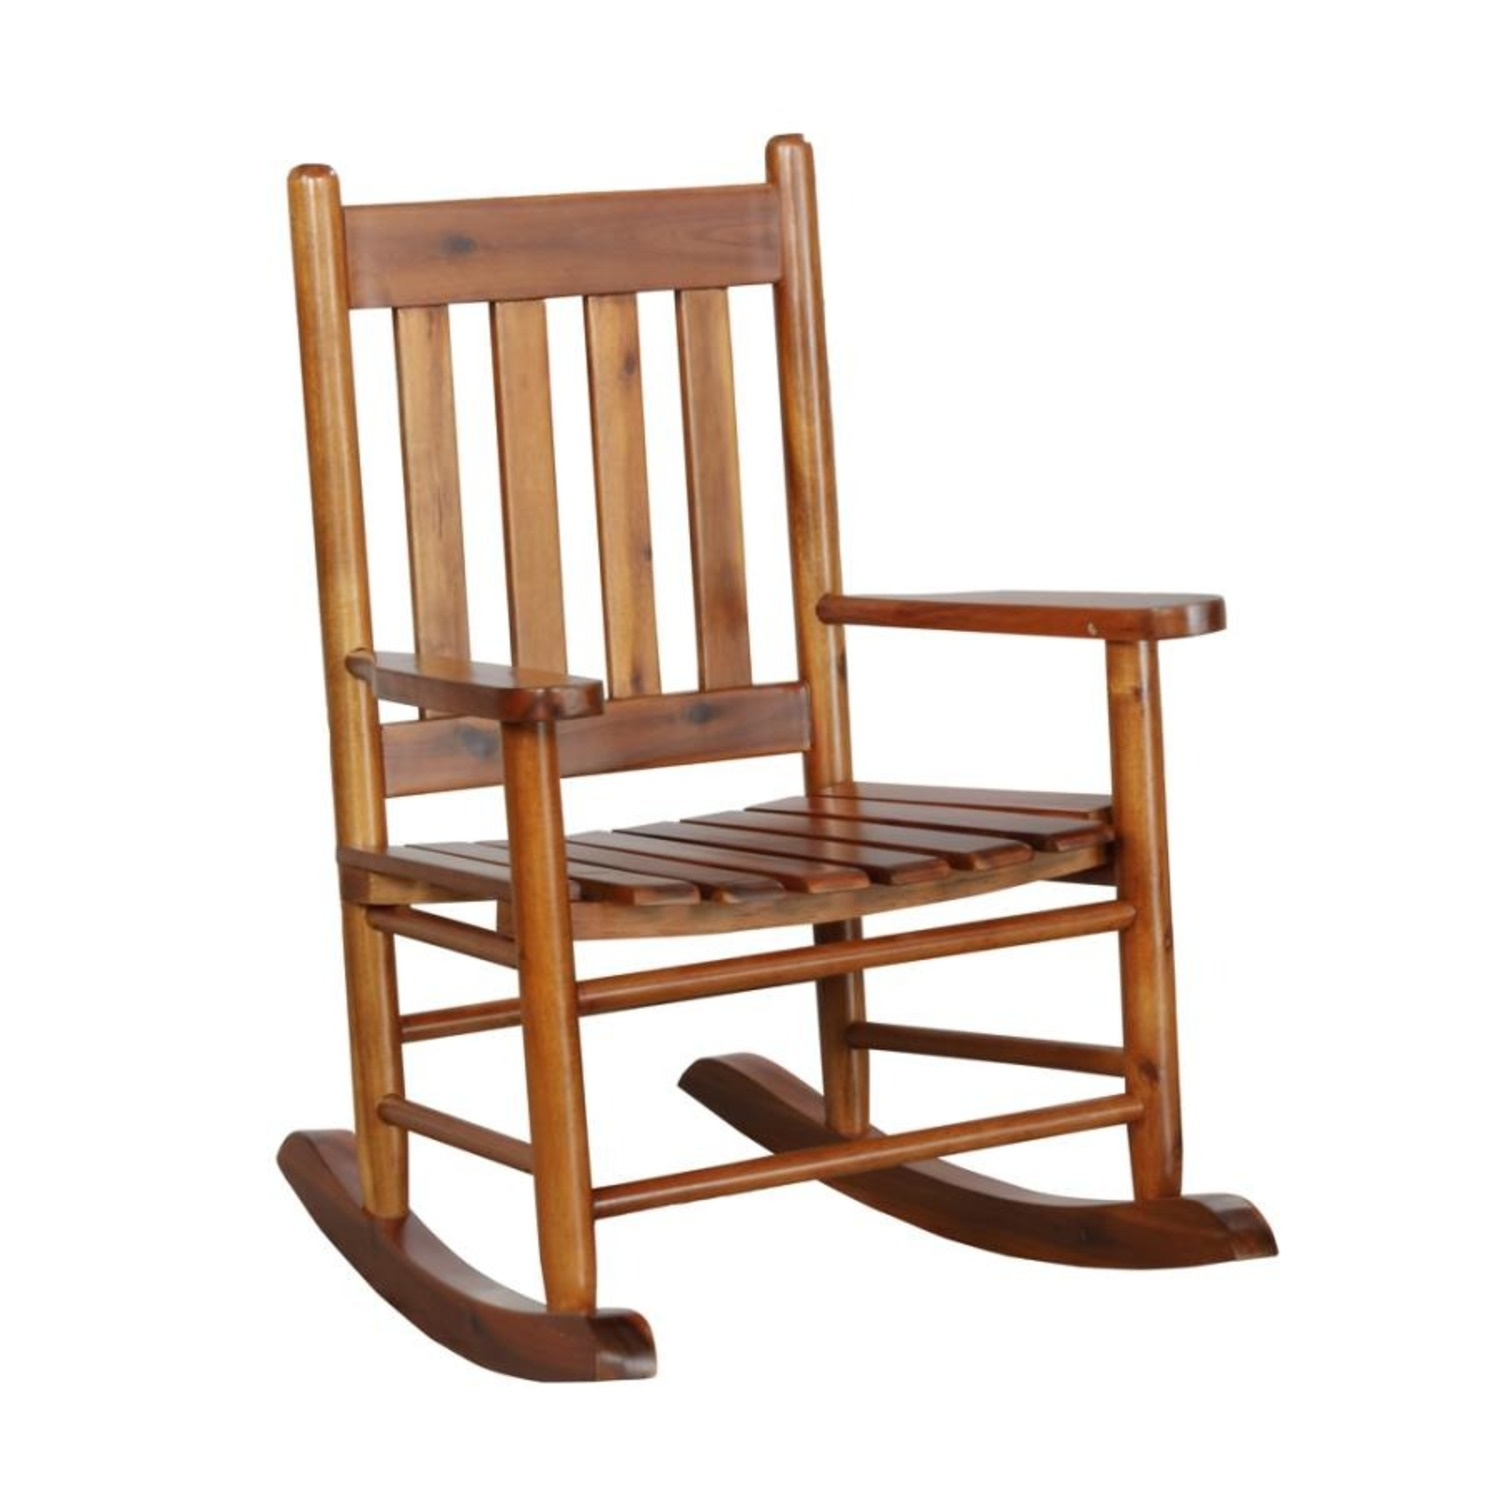 Kid's Rocking Chair In Golden Brown Finish - image-0